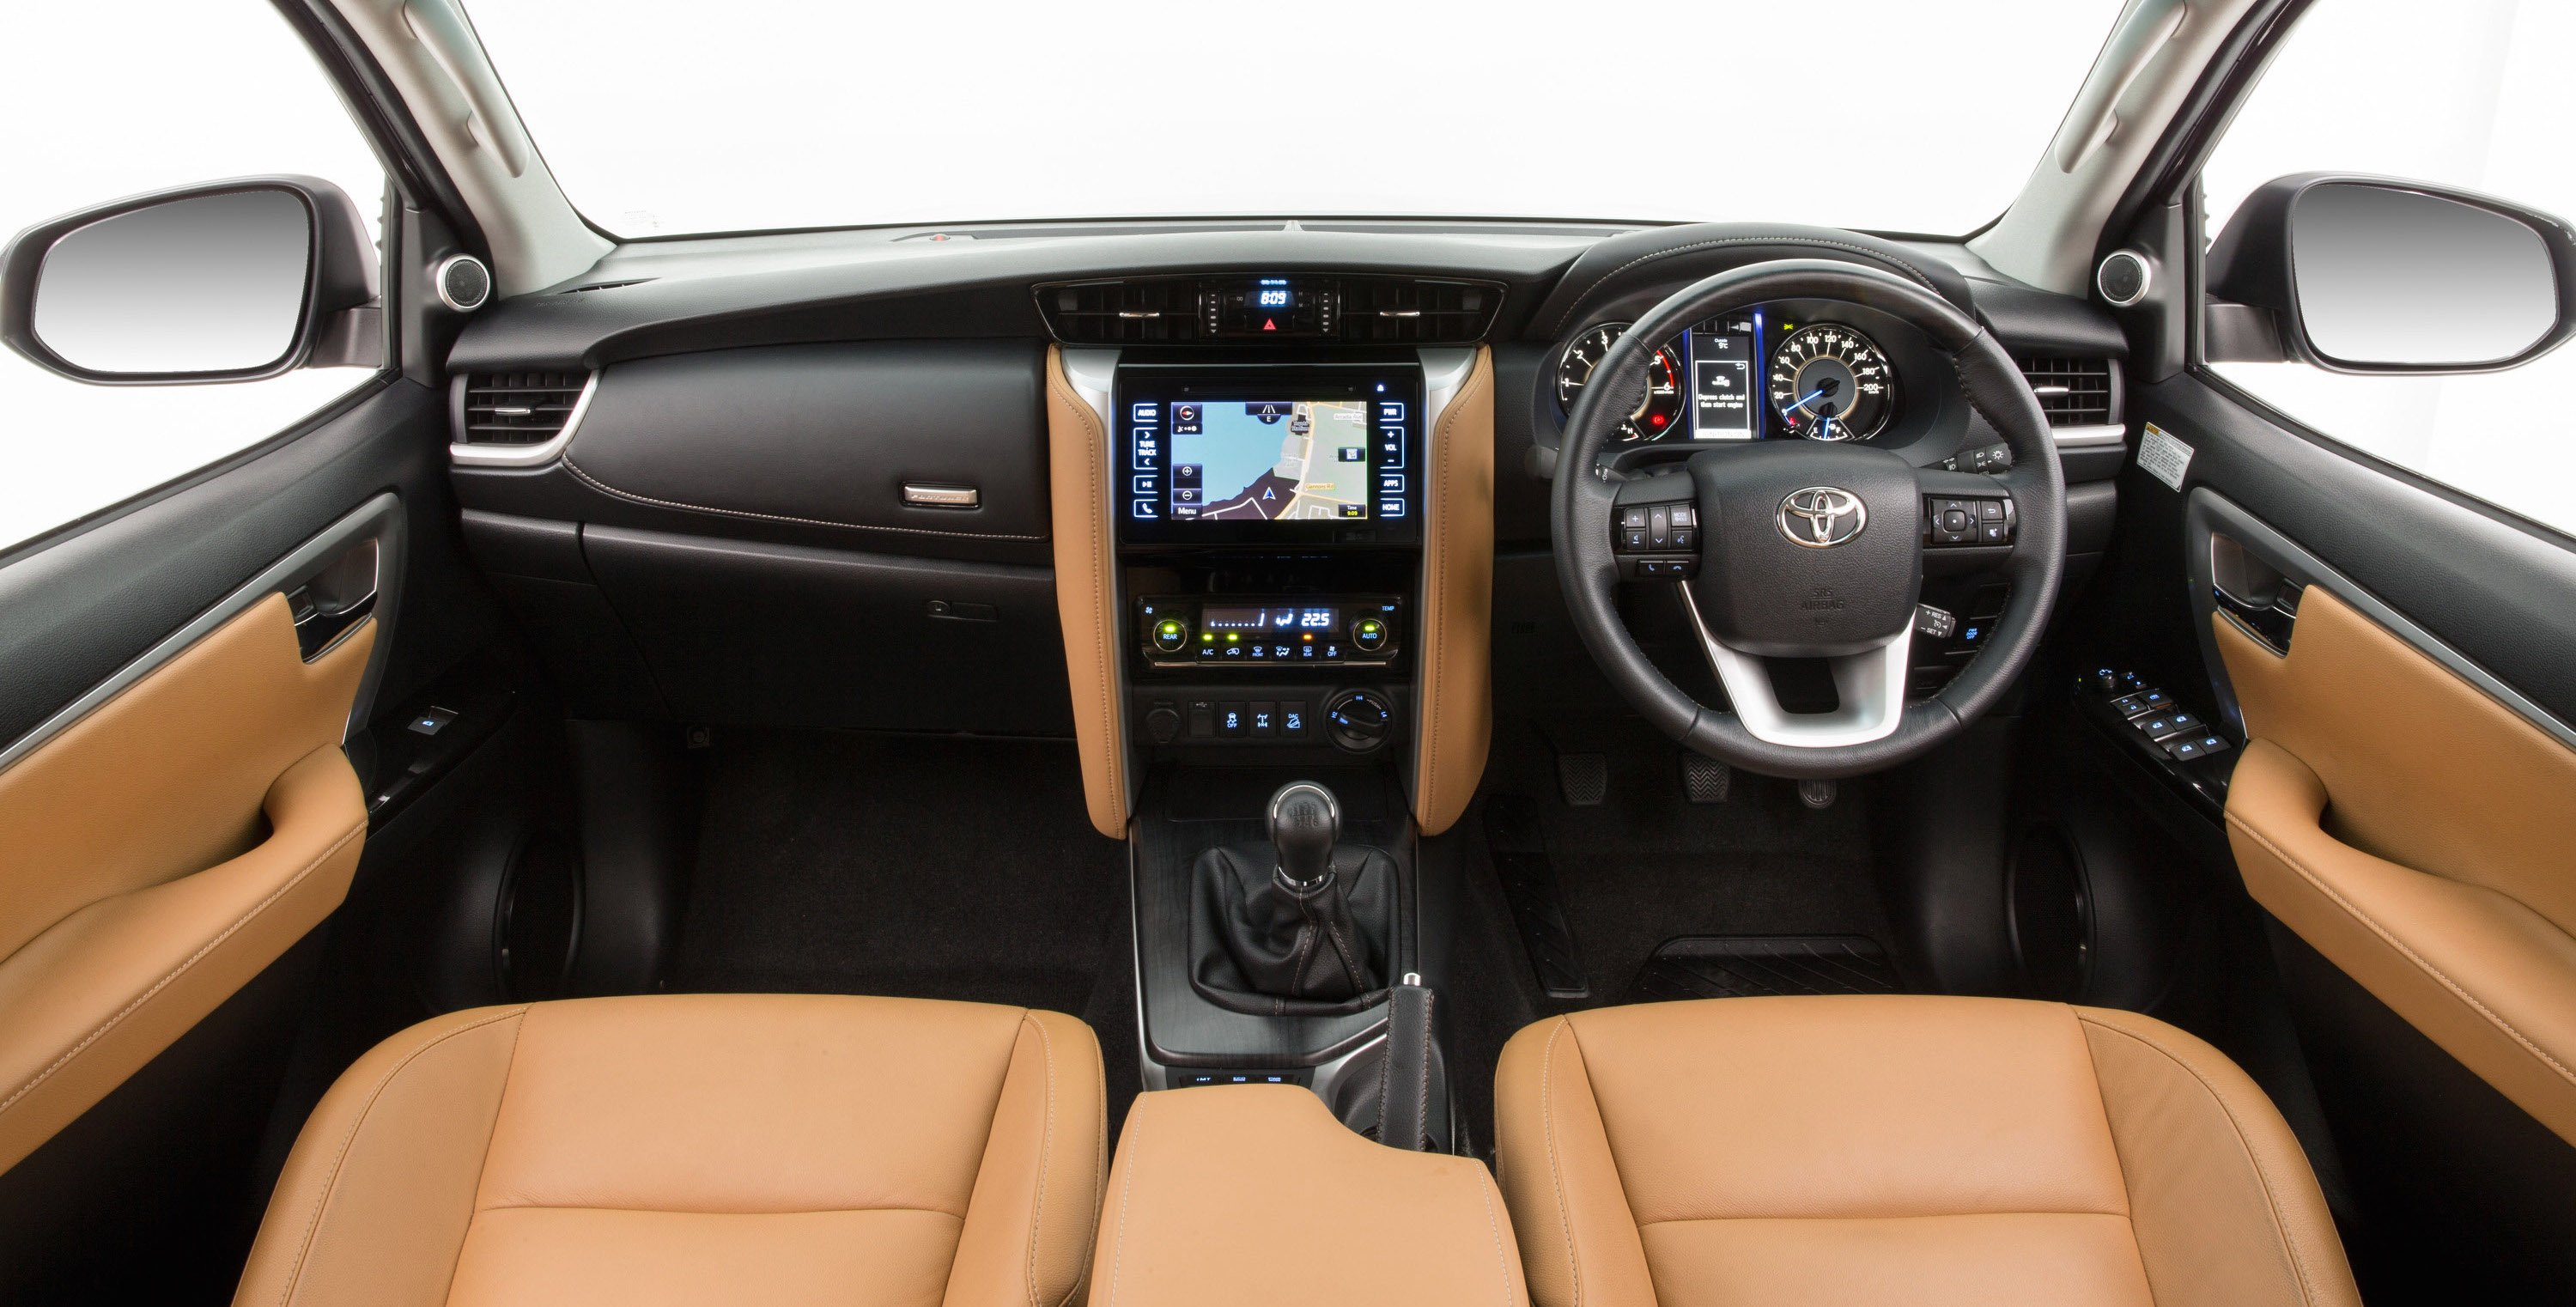 2016 toyota fortuner interior revealed photos caradvice. Black Bedroom Furniture Sets. Home Design Ideas